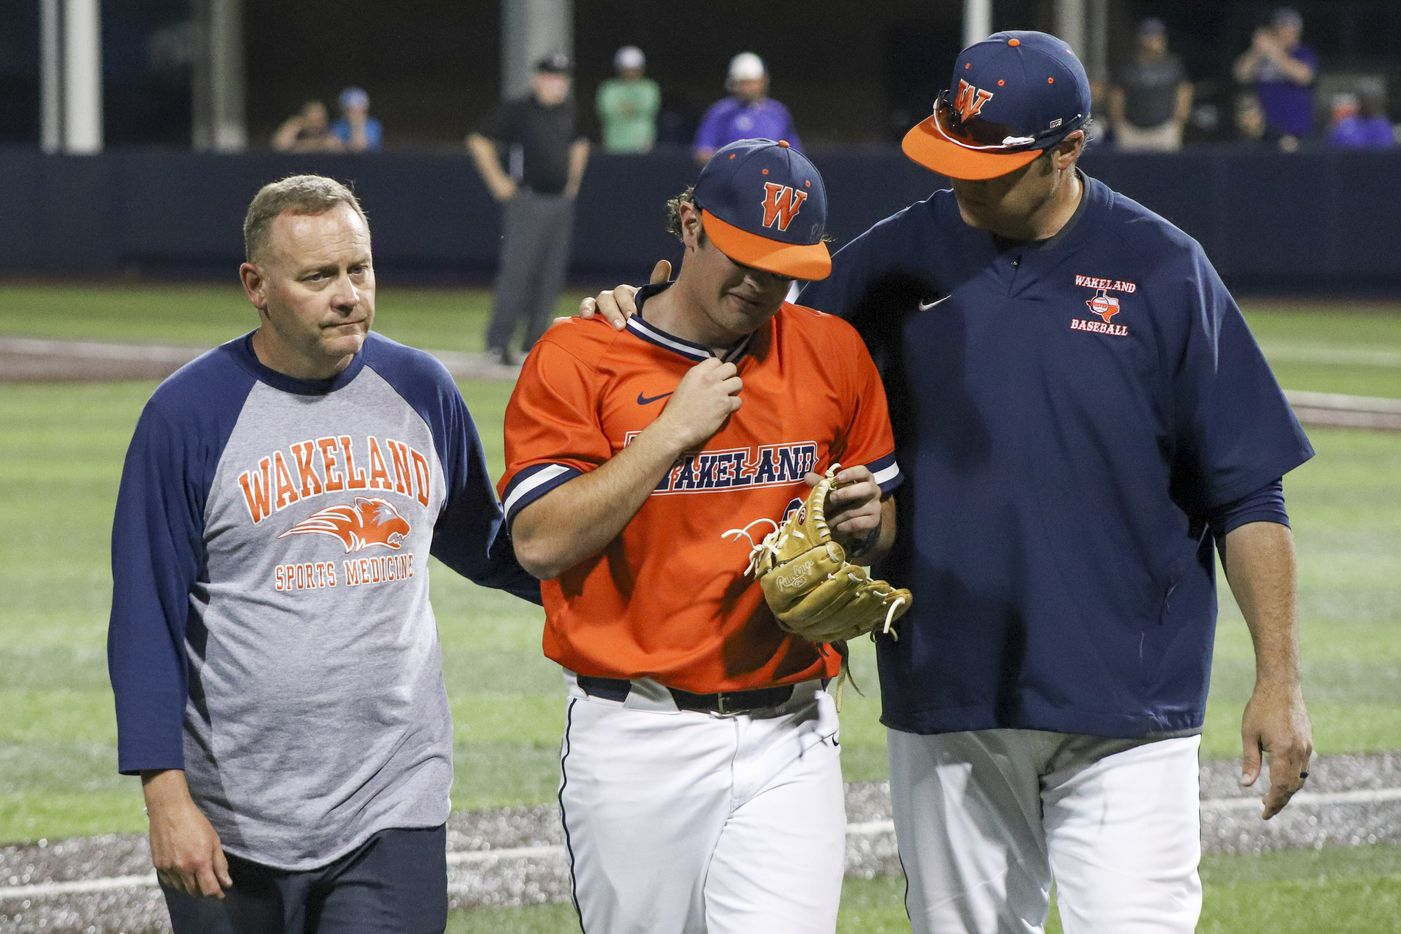 Frisco Wakeland pitcher Robert Fortenberry (9) is comforted after exiting the game because of an injury during game two of the UIL baseball 5A Region II final series against Hallsville at Horner Ballpark in Dallas on Friday, June 4, 2021. (Elias Valverde II / Special Contributor)